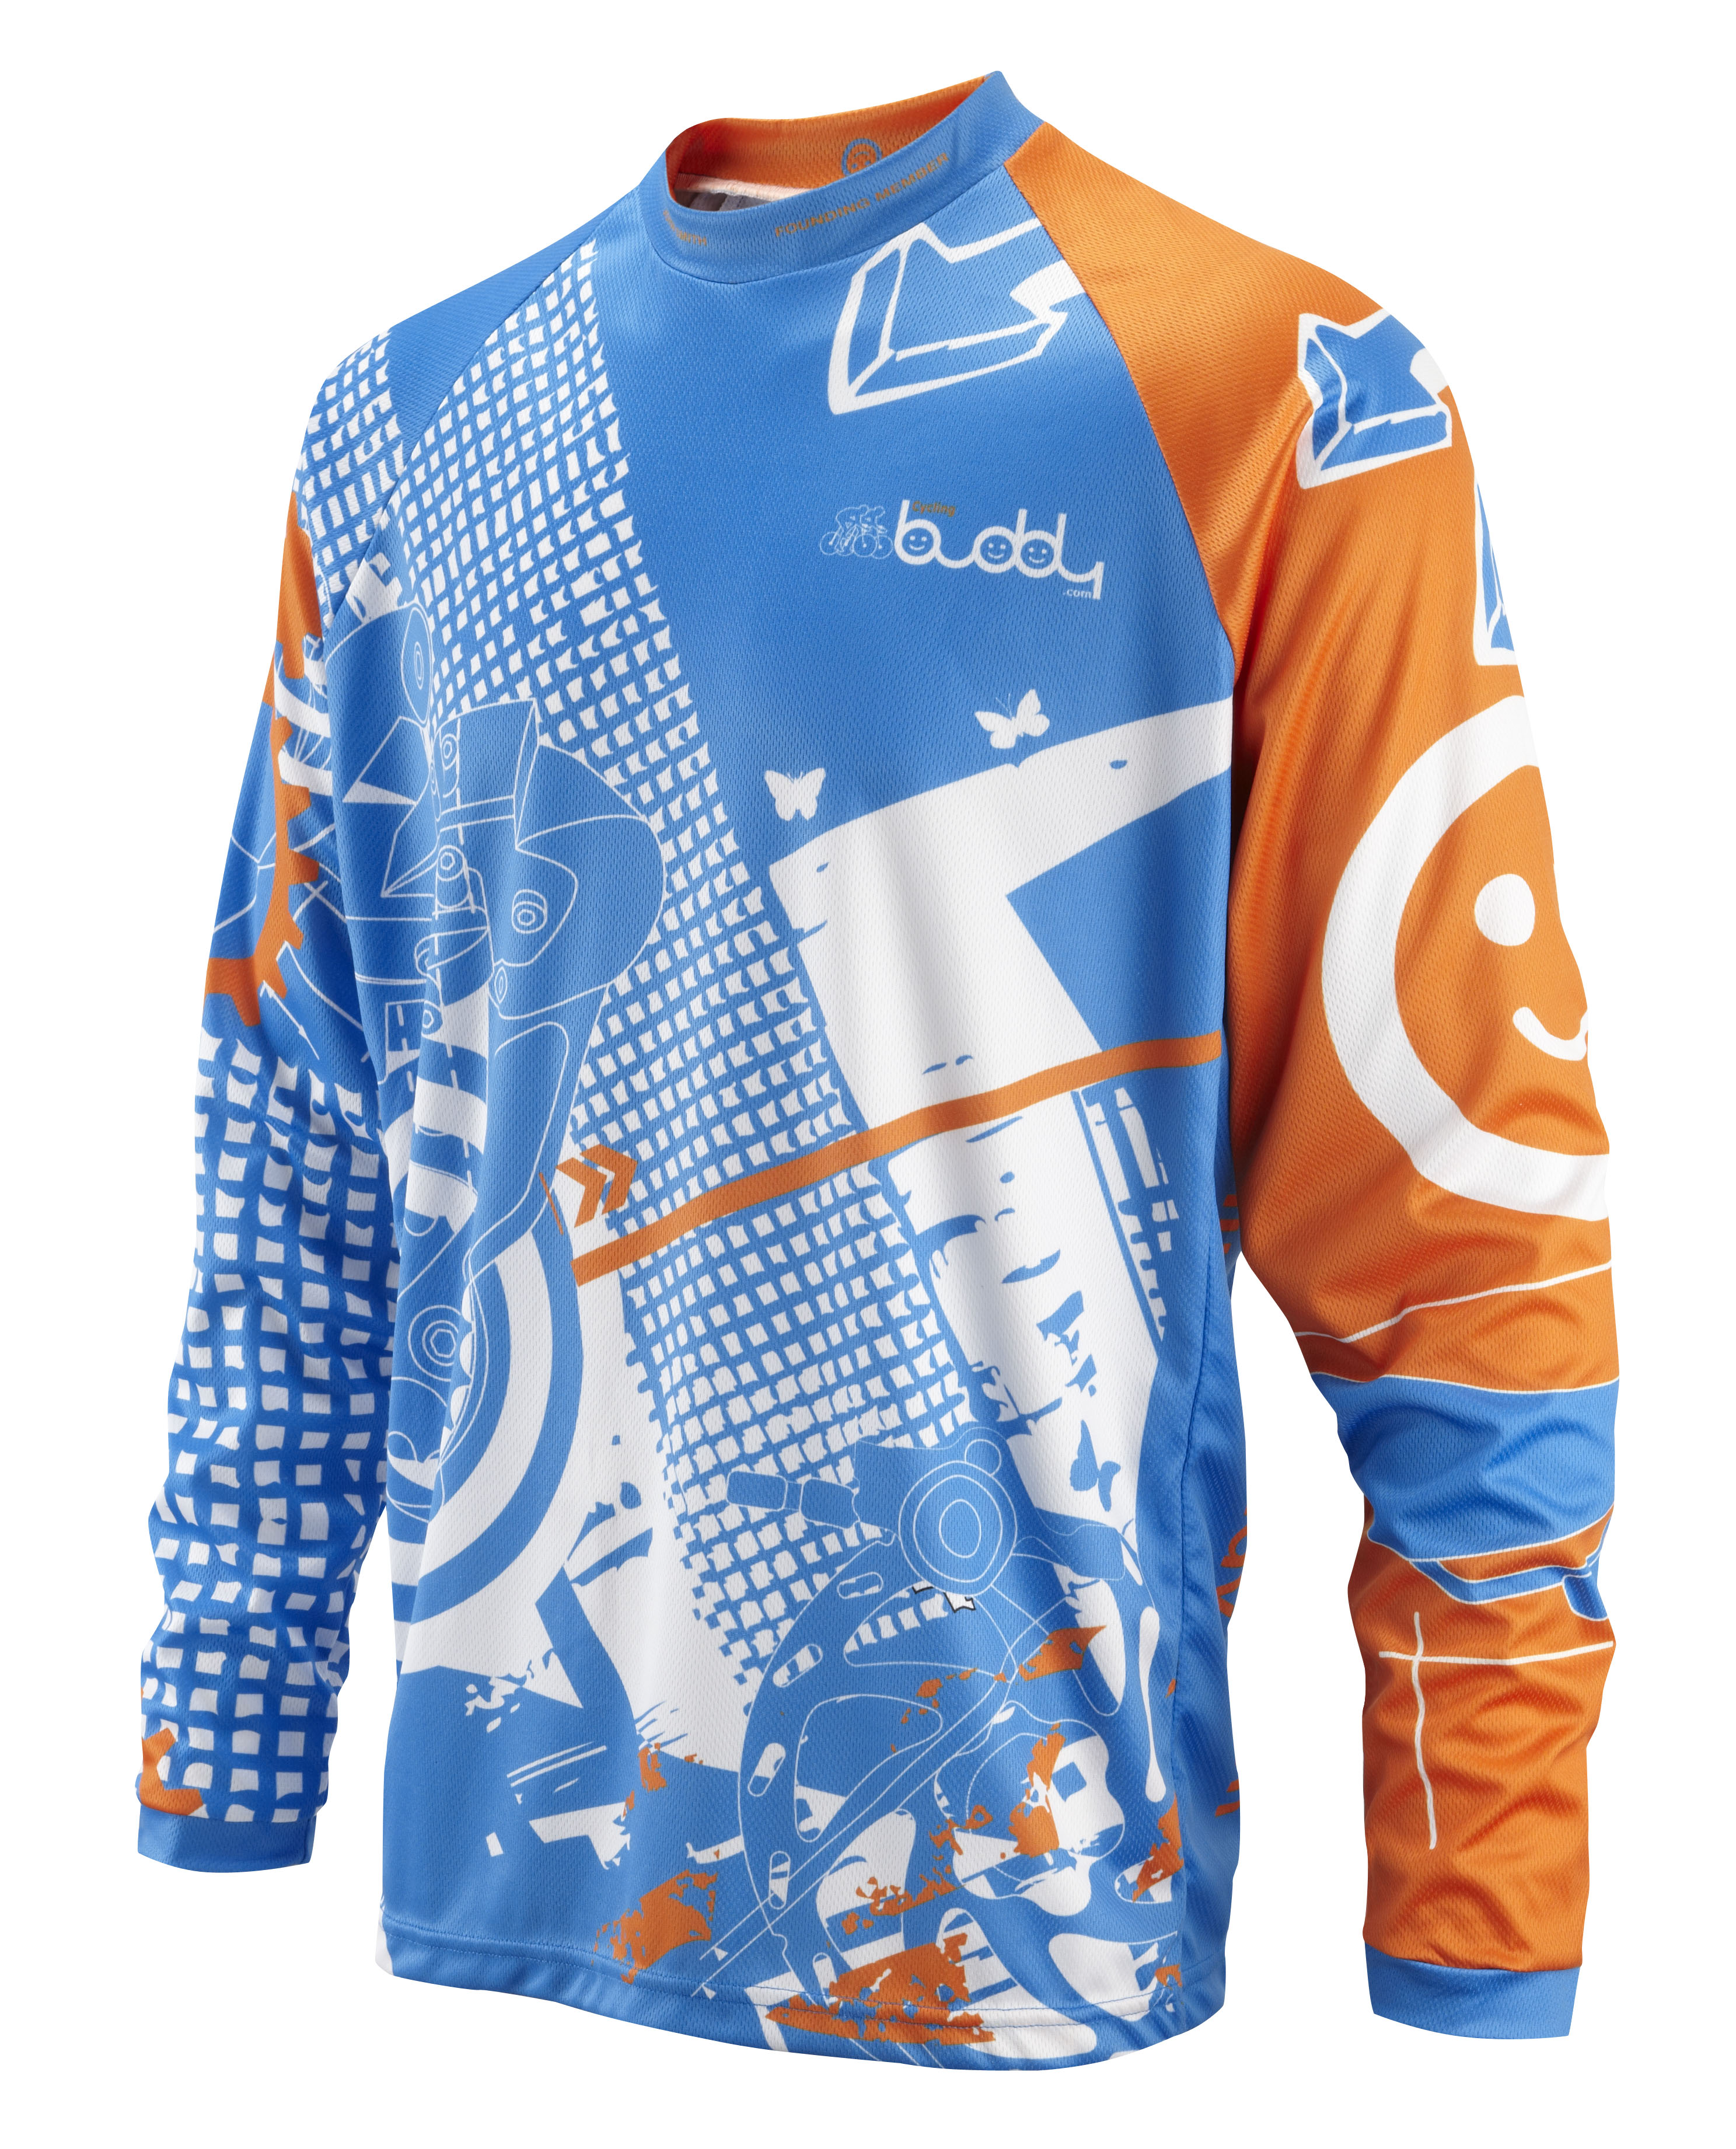 CyclingBuddy Downhill Founding Member Jersey